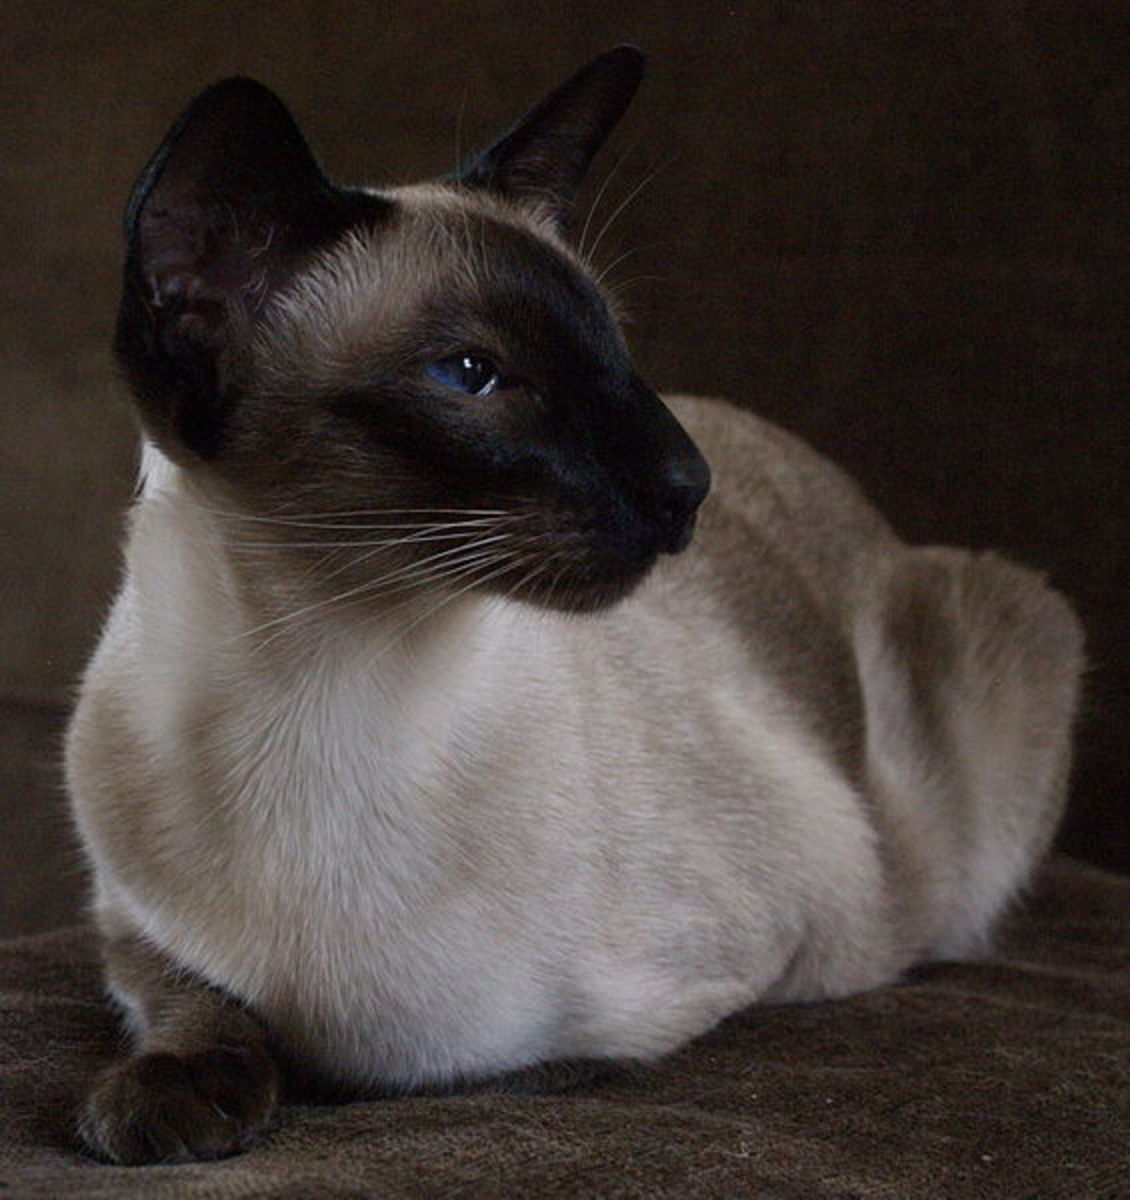 Darker colored fur on the extremities (points) are a signature trait of Siamese cats. In addition, the most attractive part of Siamese cats are the eyes that are almond shape and at an angle.